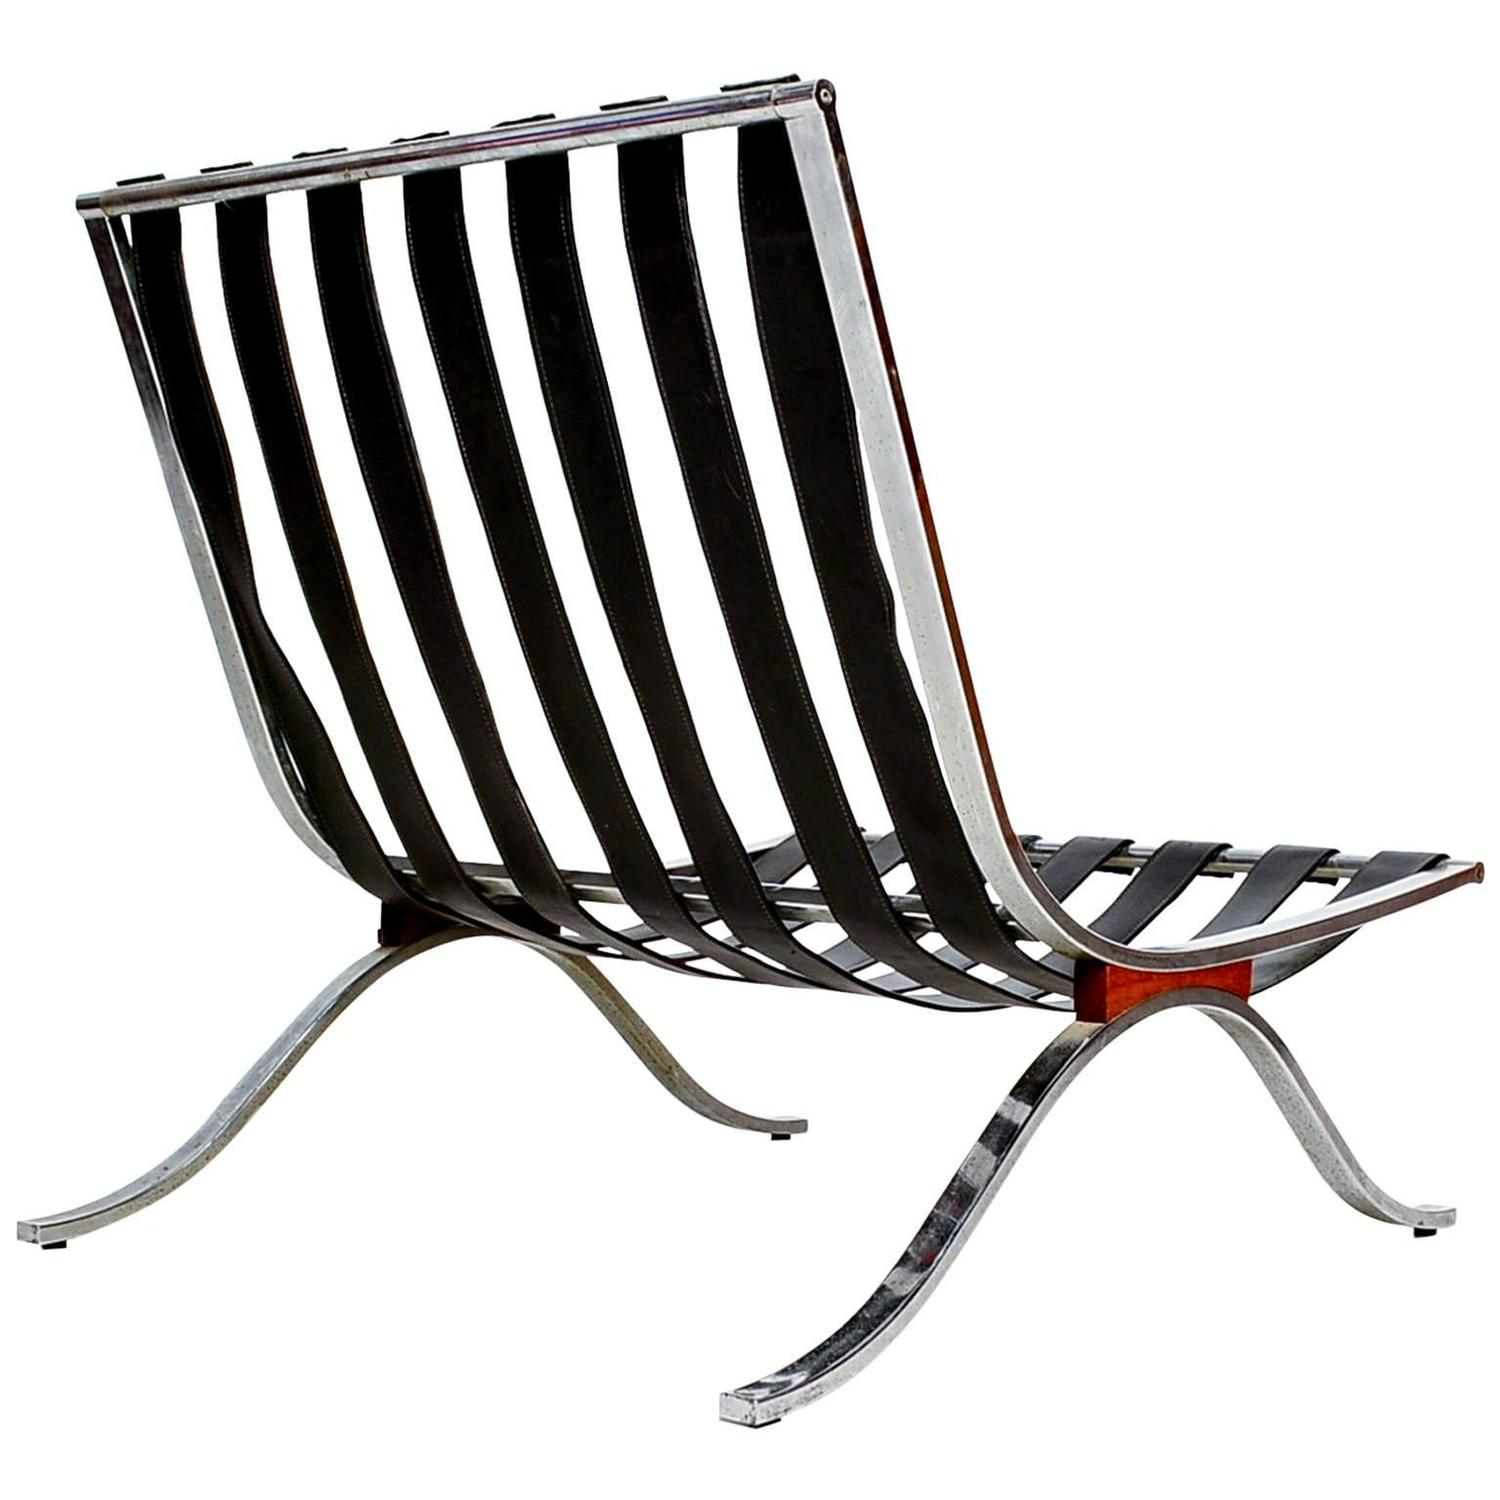 Selig Lounge Chair Barcelona Style For Sale at 1stdibs